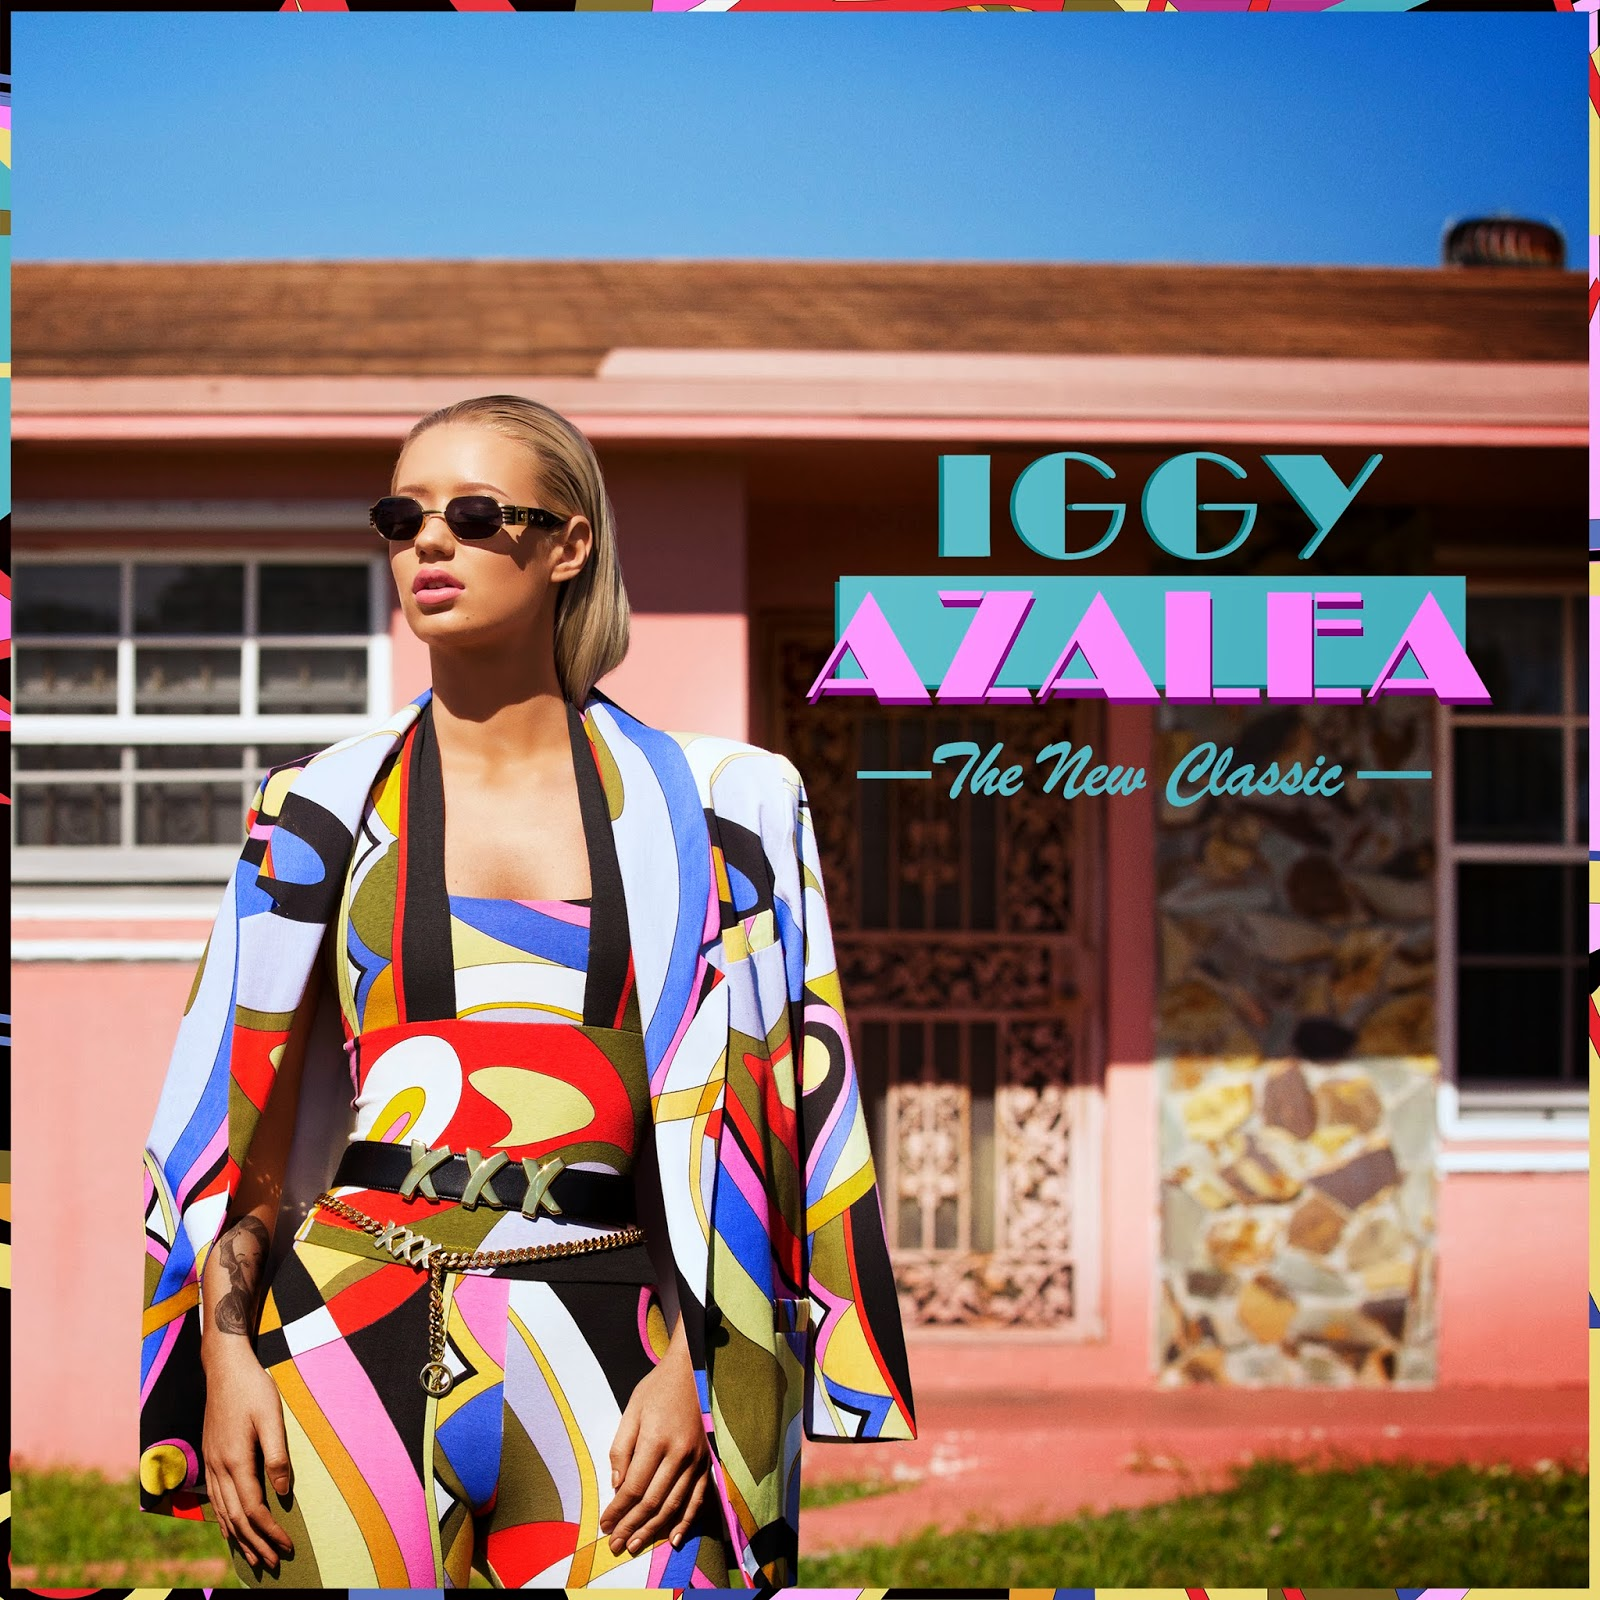 Iggy Azalea's to release highly anticipated debut album, The New Classic